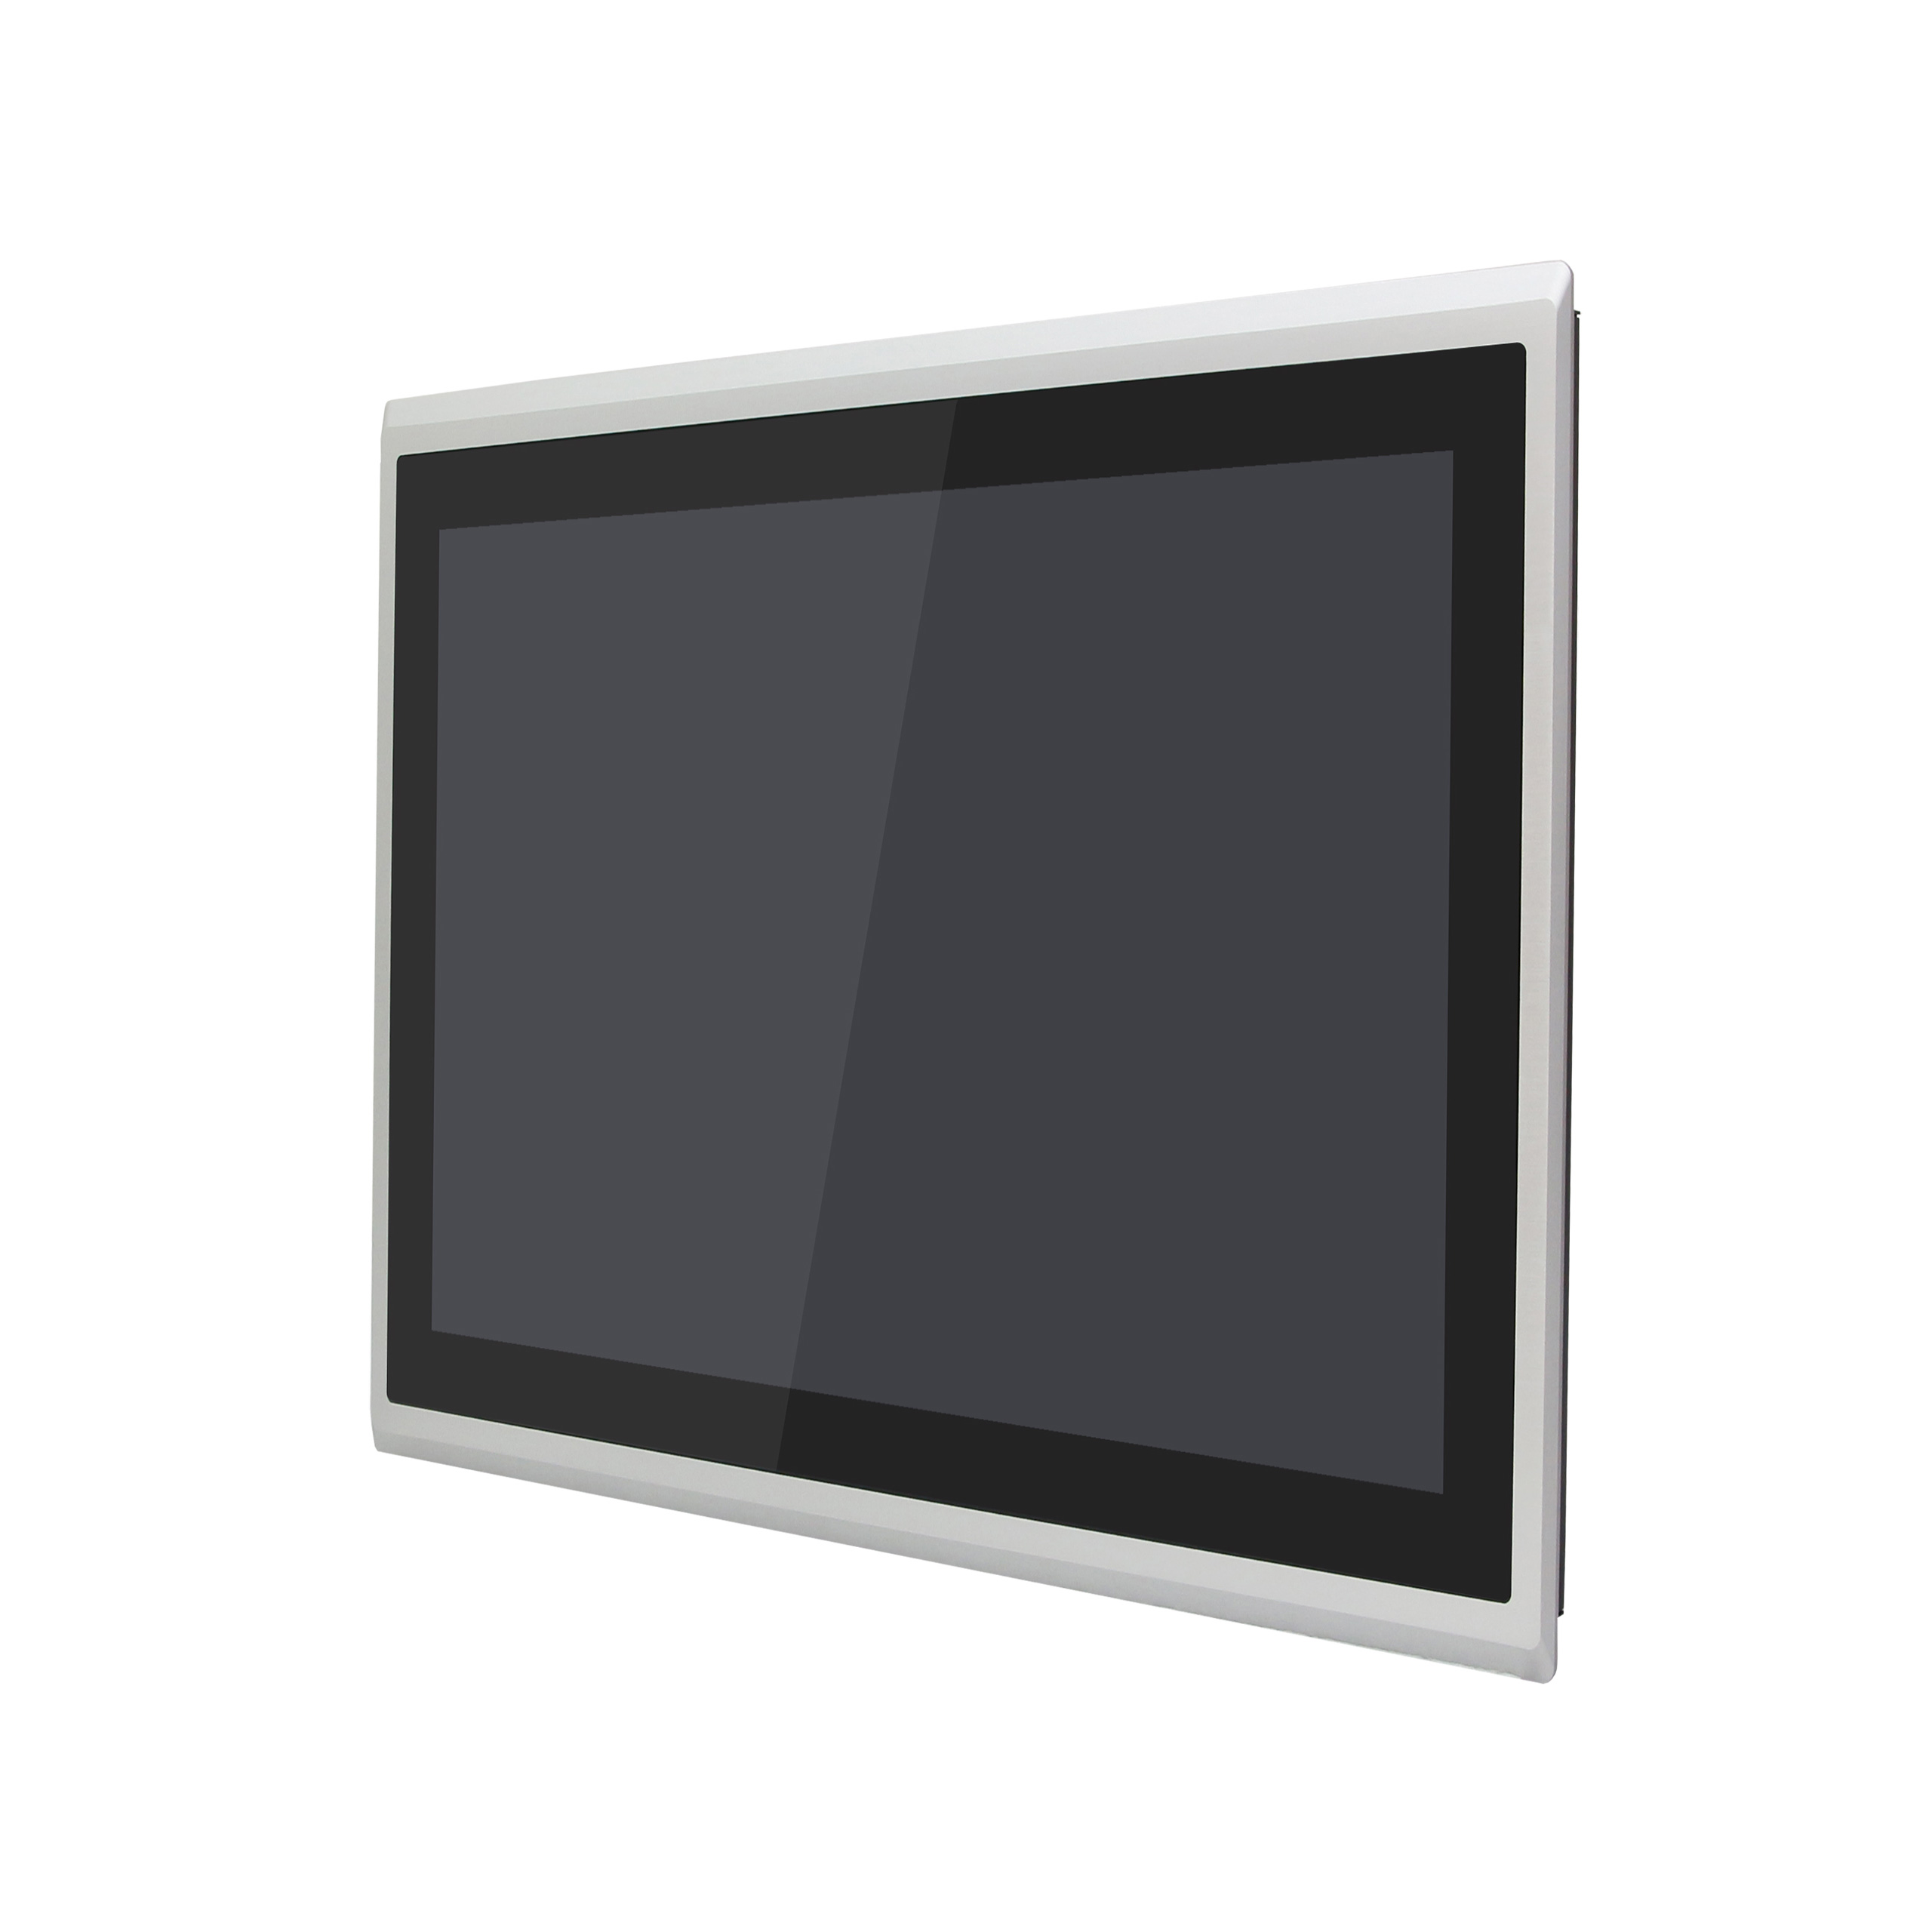 "P-S1703P 17"" Panel PC Quad Core Low Power"